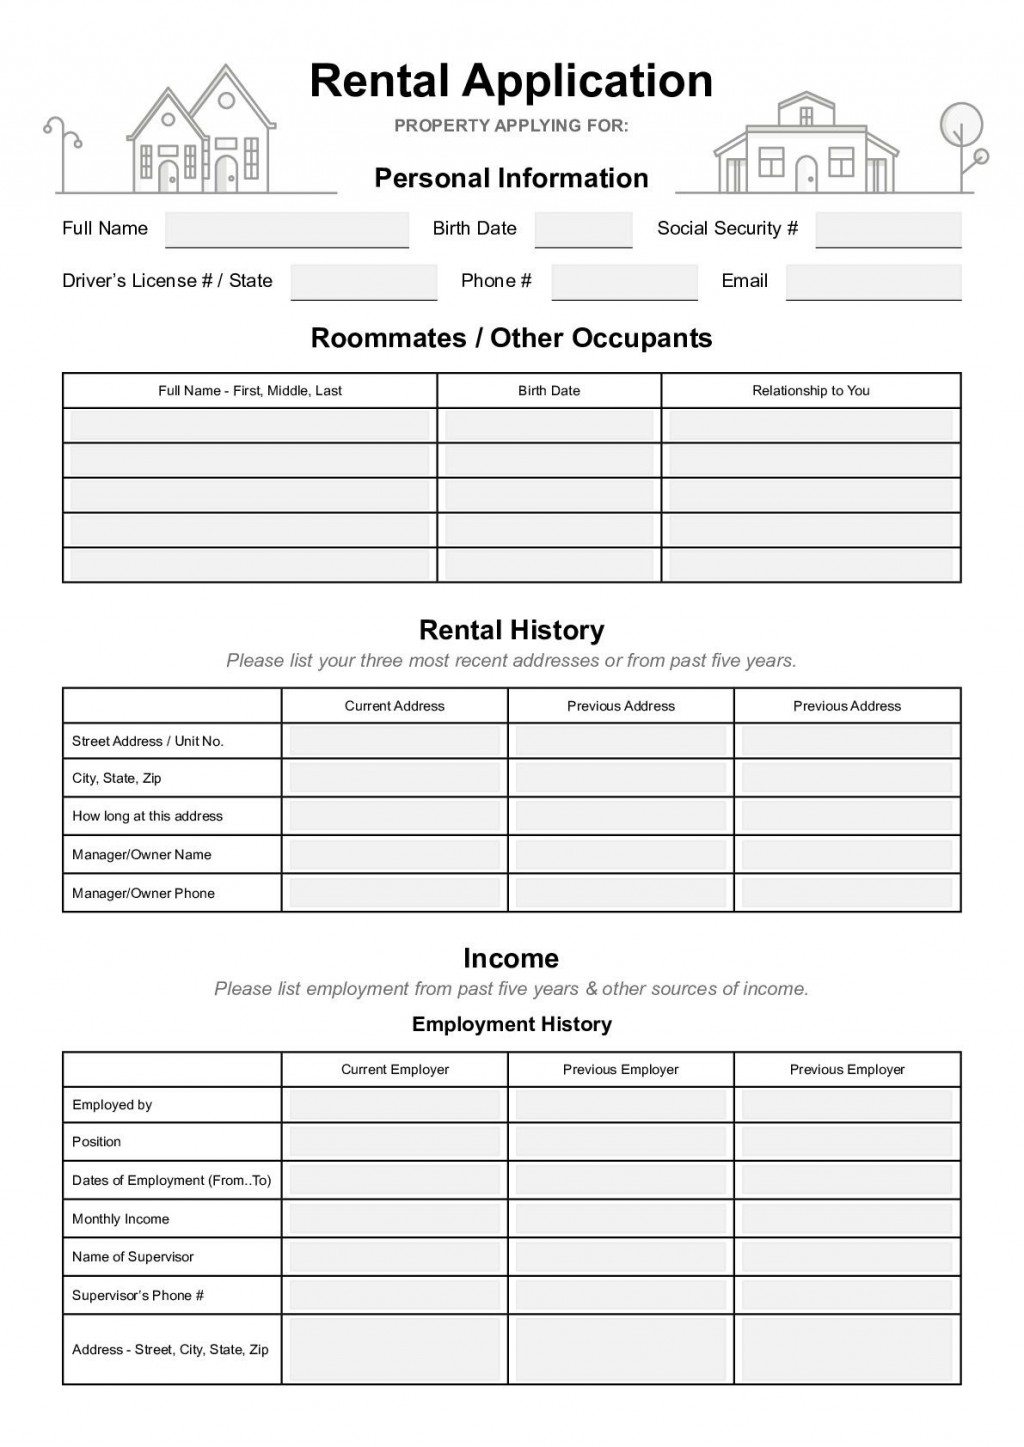 000 Phenomenal Free Rental Application Template Idea  Form Oregon Credit OnlineLarge